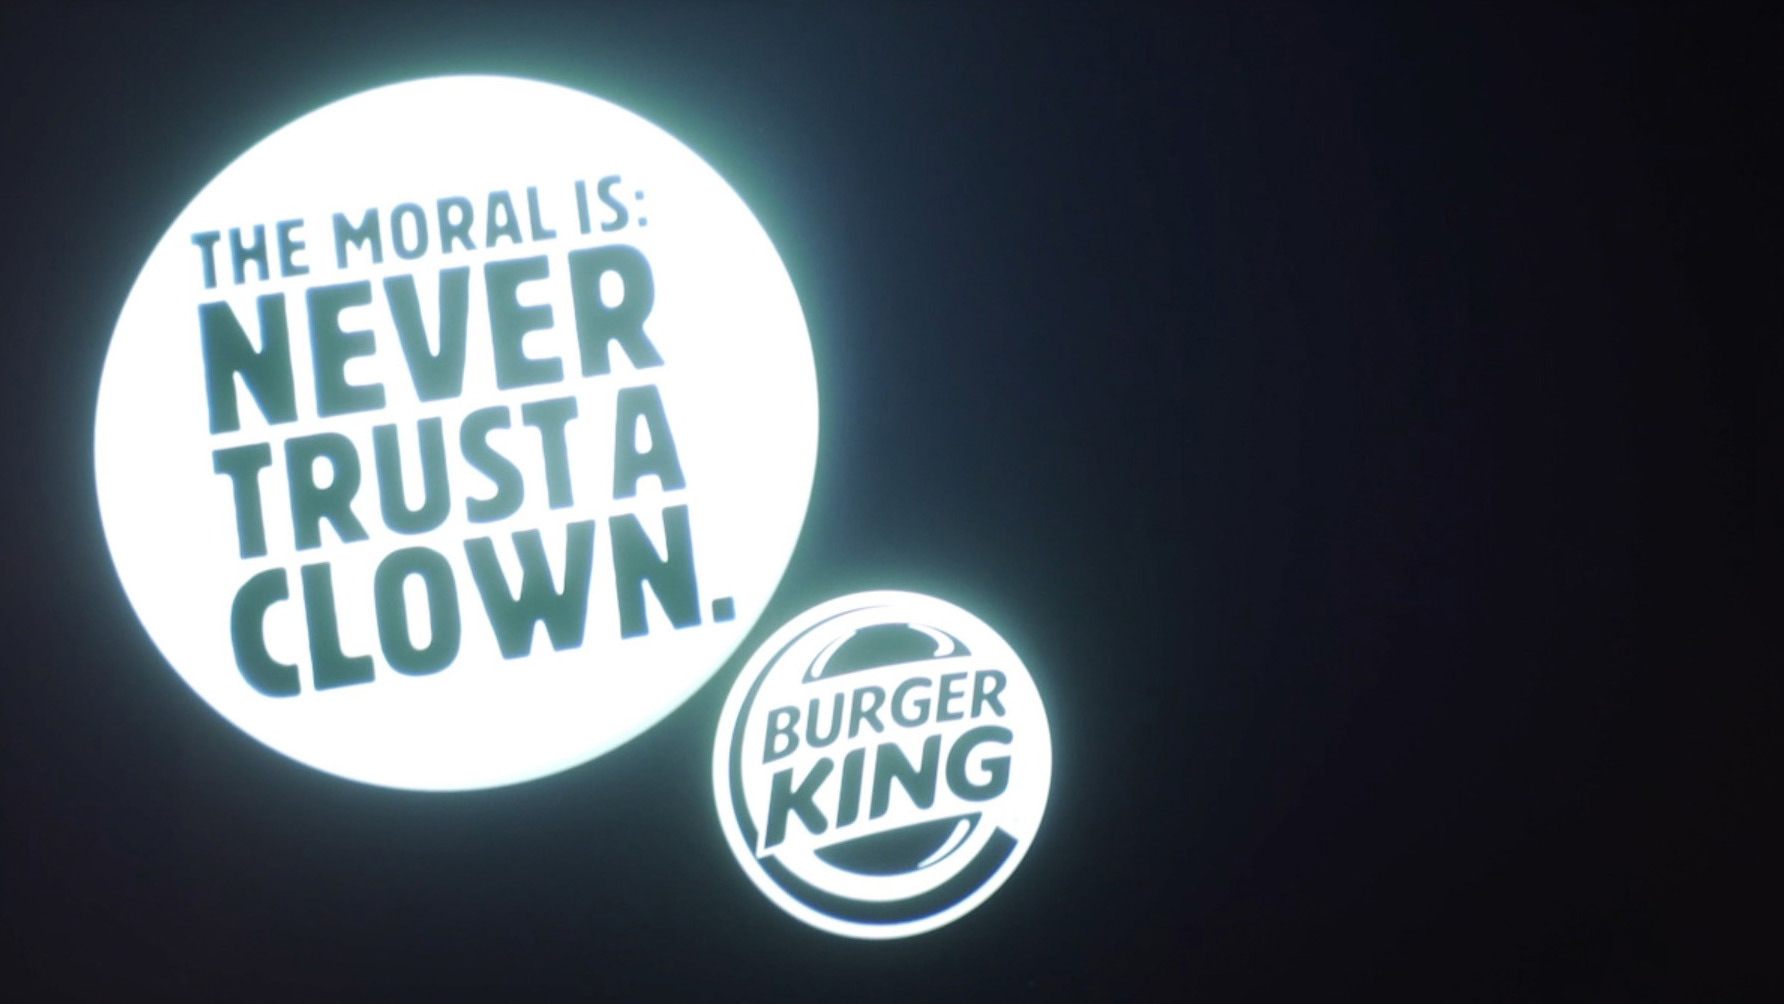 burger king trolls mcdonald's with a hilarious ad at screenings of